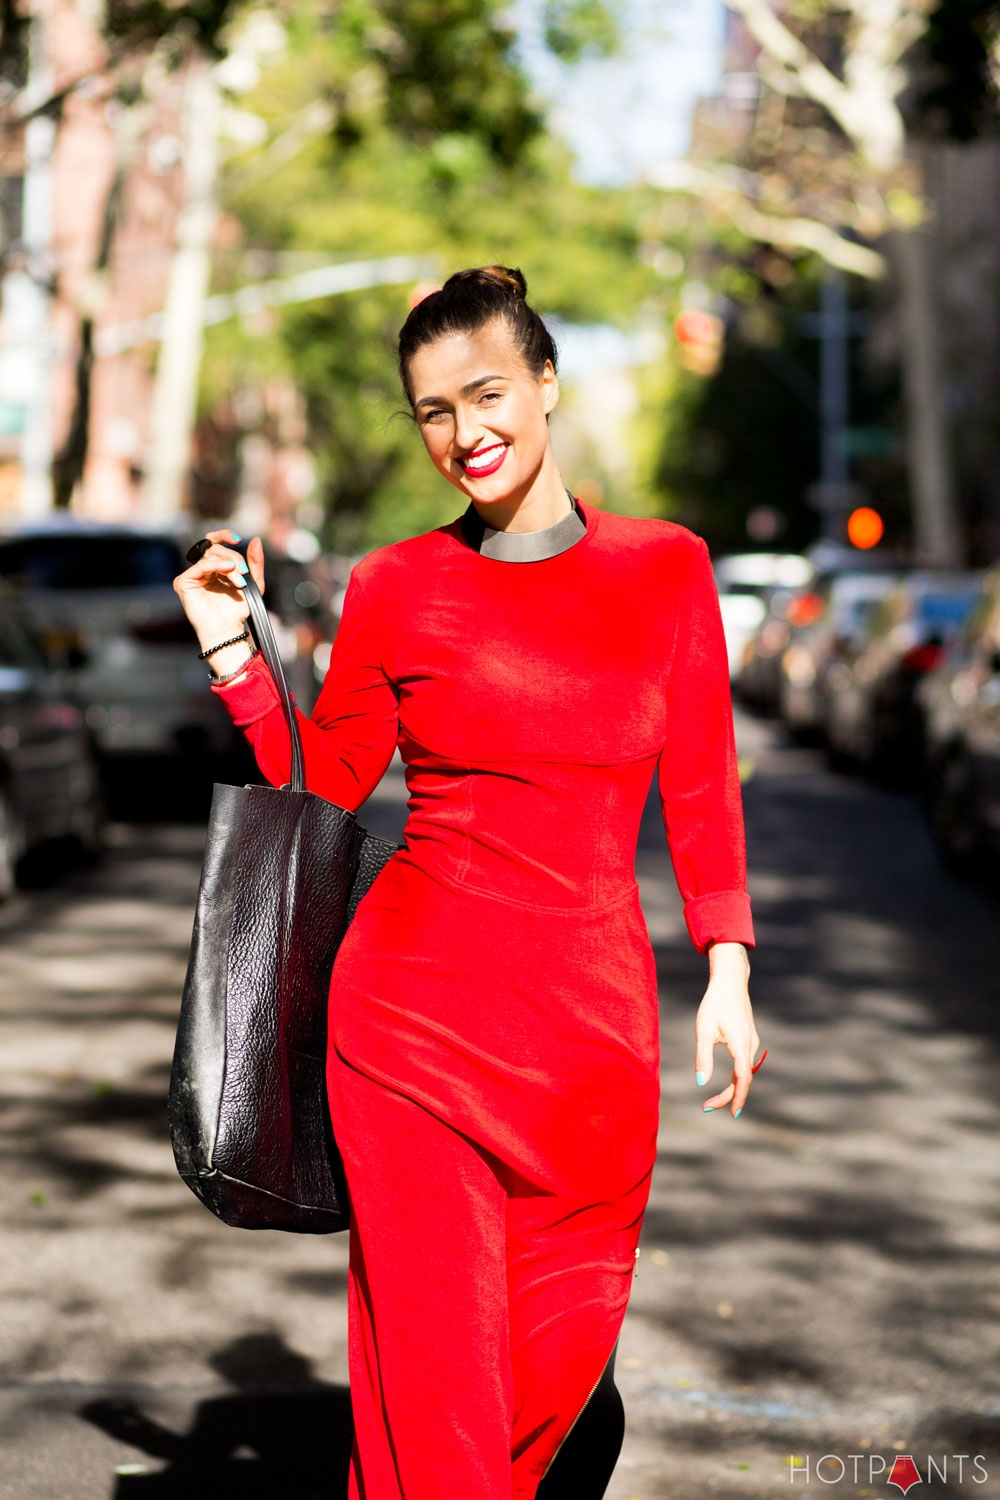 Red Lips Lipstick Matching Lips and Outfit Long Hair Bun Updo